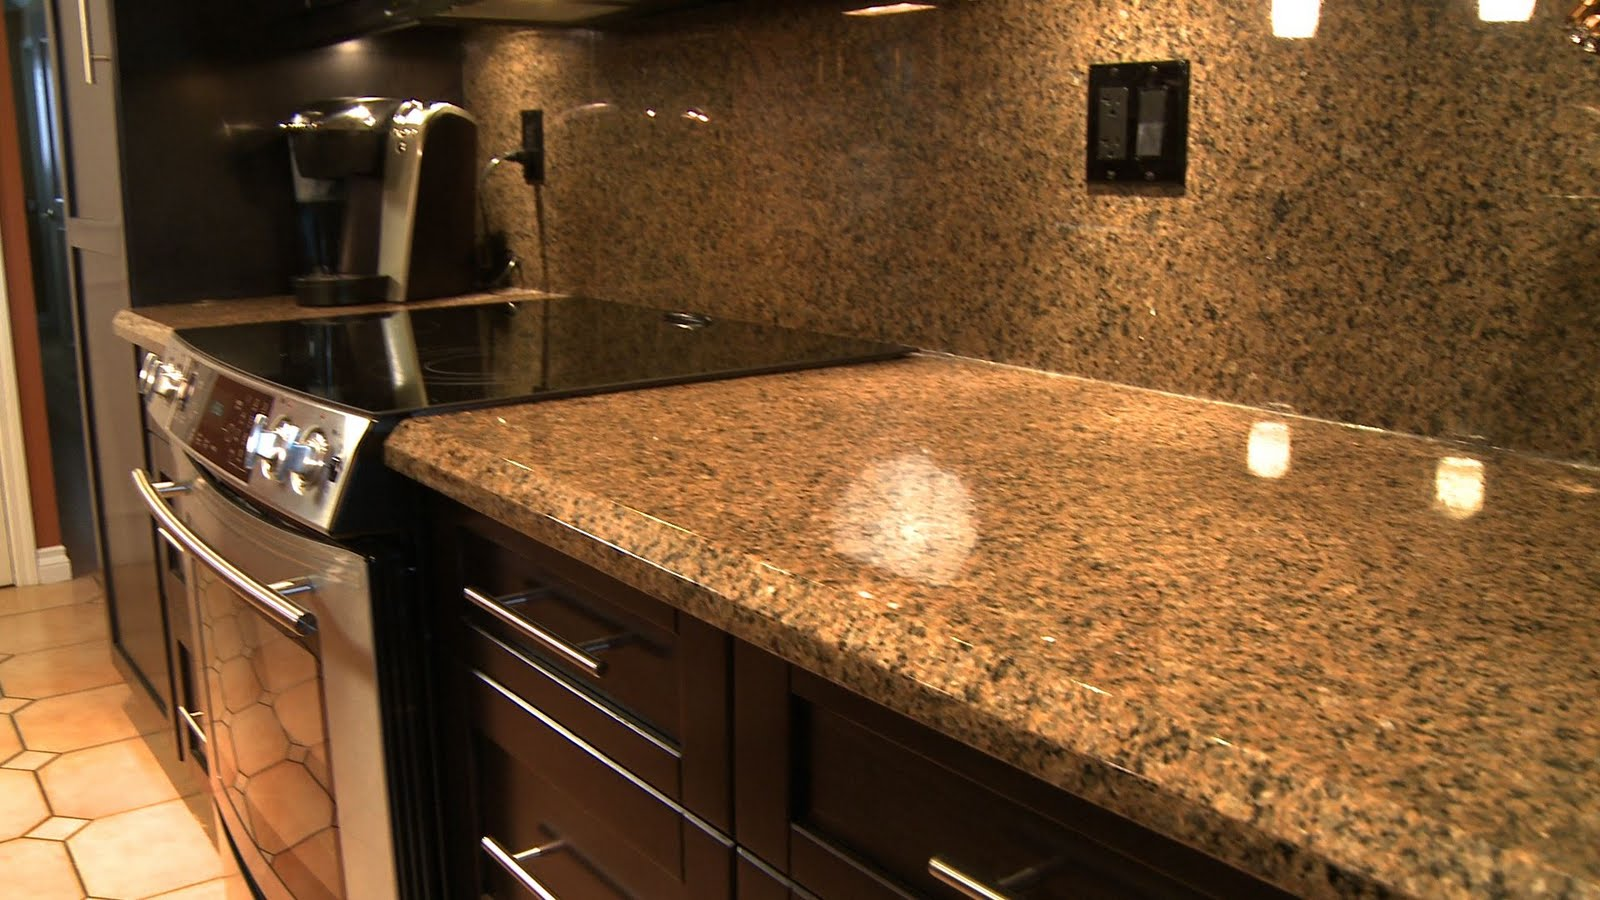 The Best Granite Countertop Installers In Vista, CA 20  Thumbtack